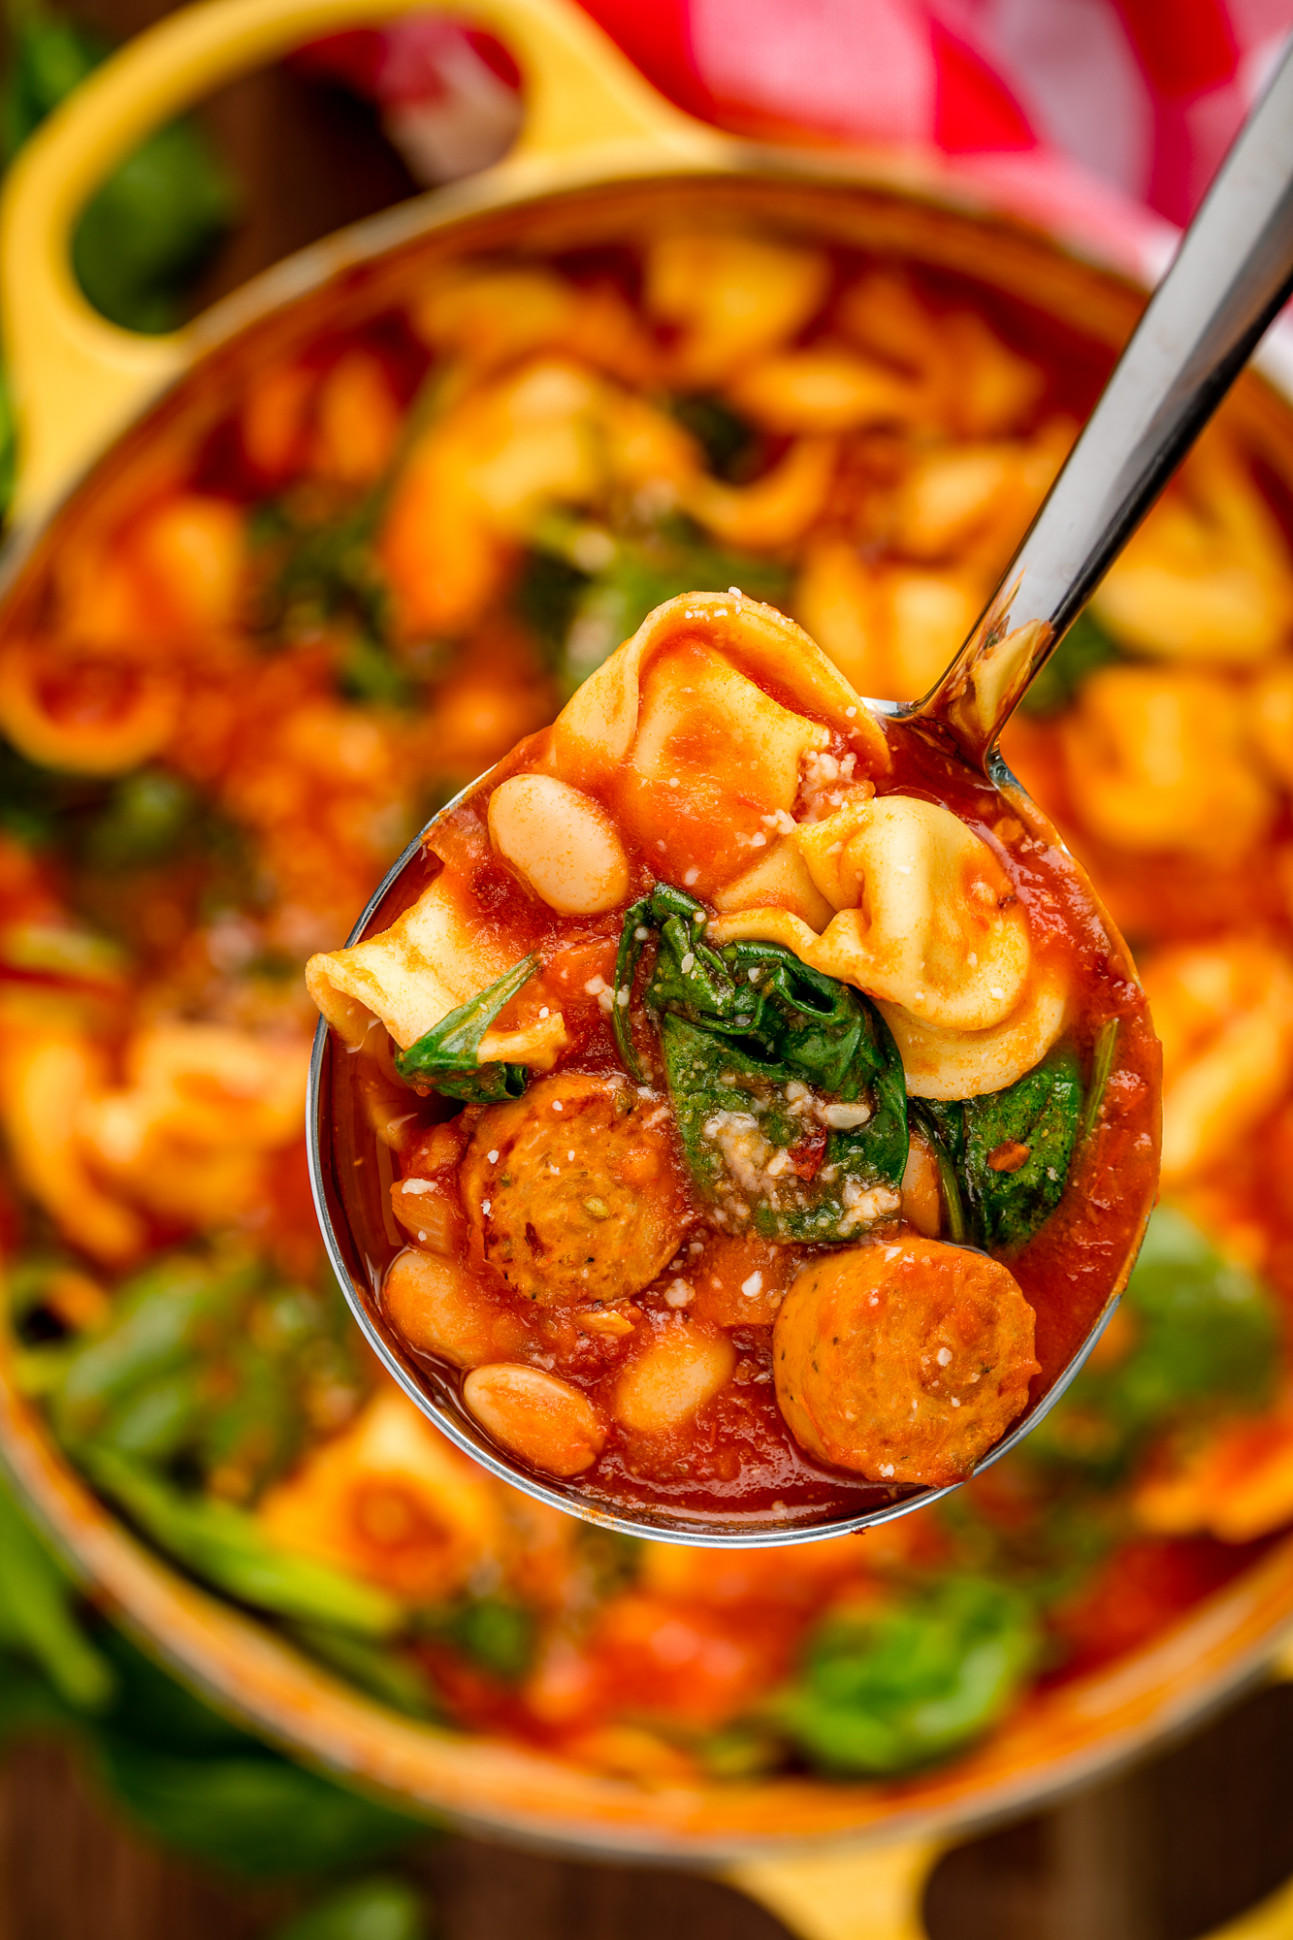 Best Tuscan Tortellini Soup Recipe - How to Make Tuscan ...